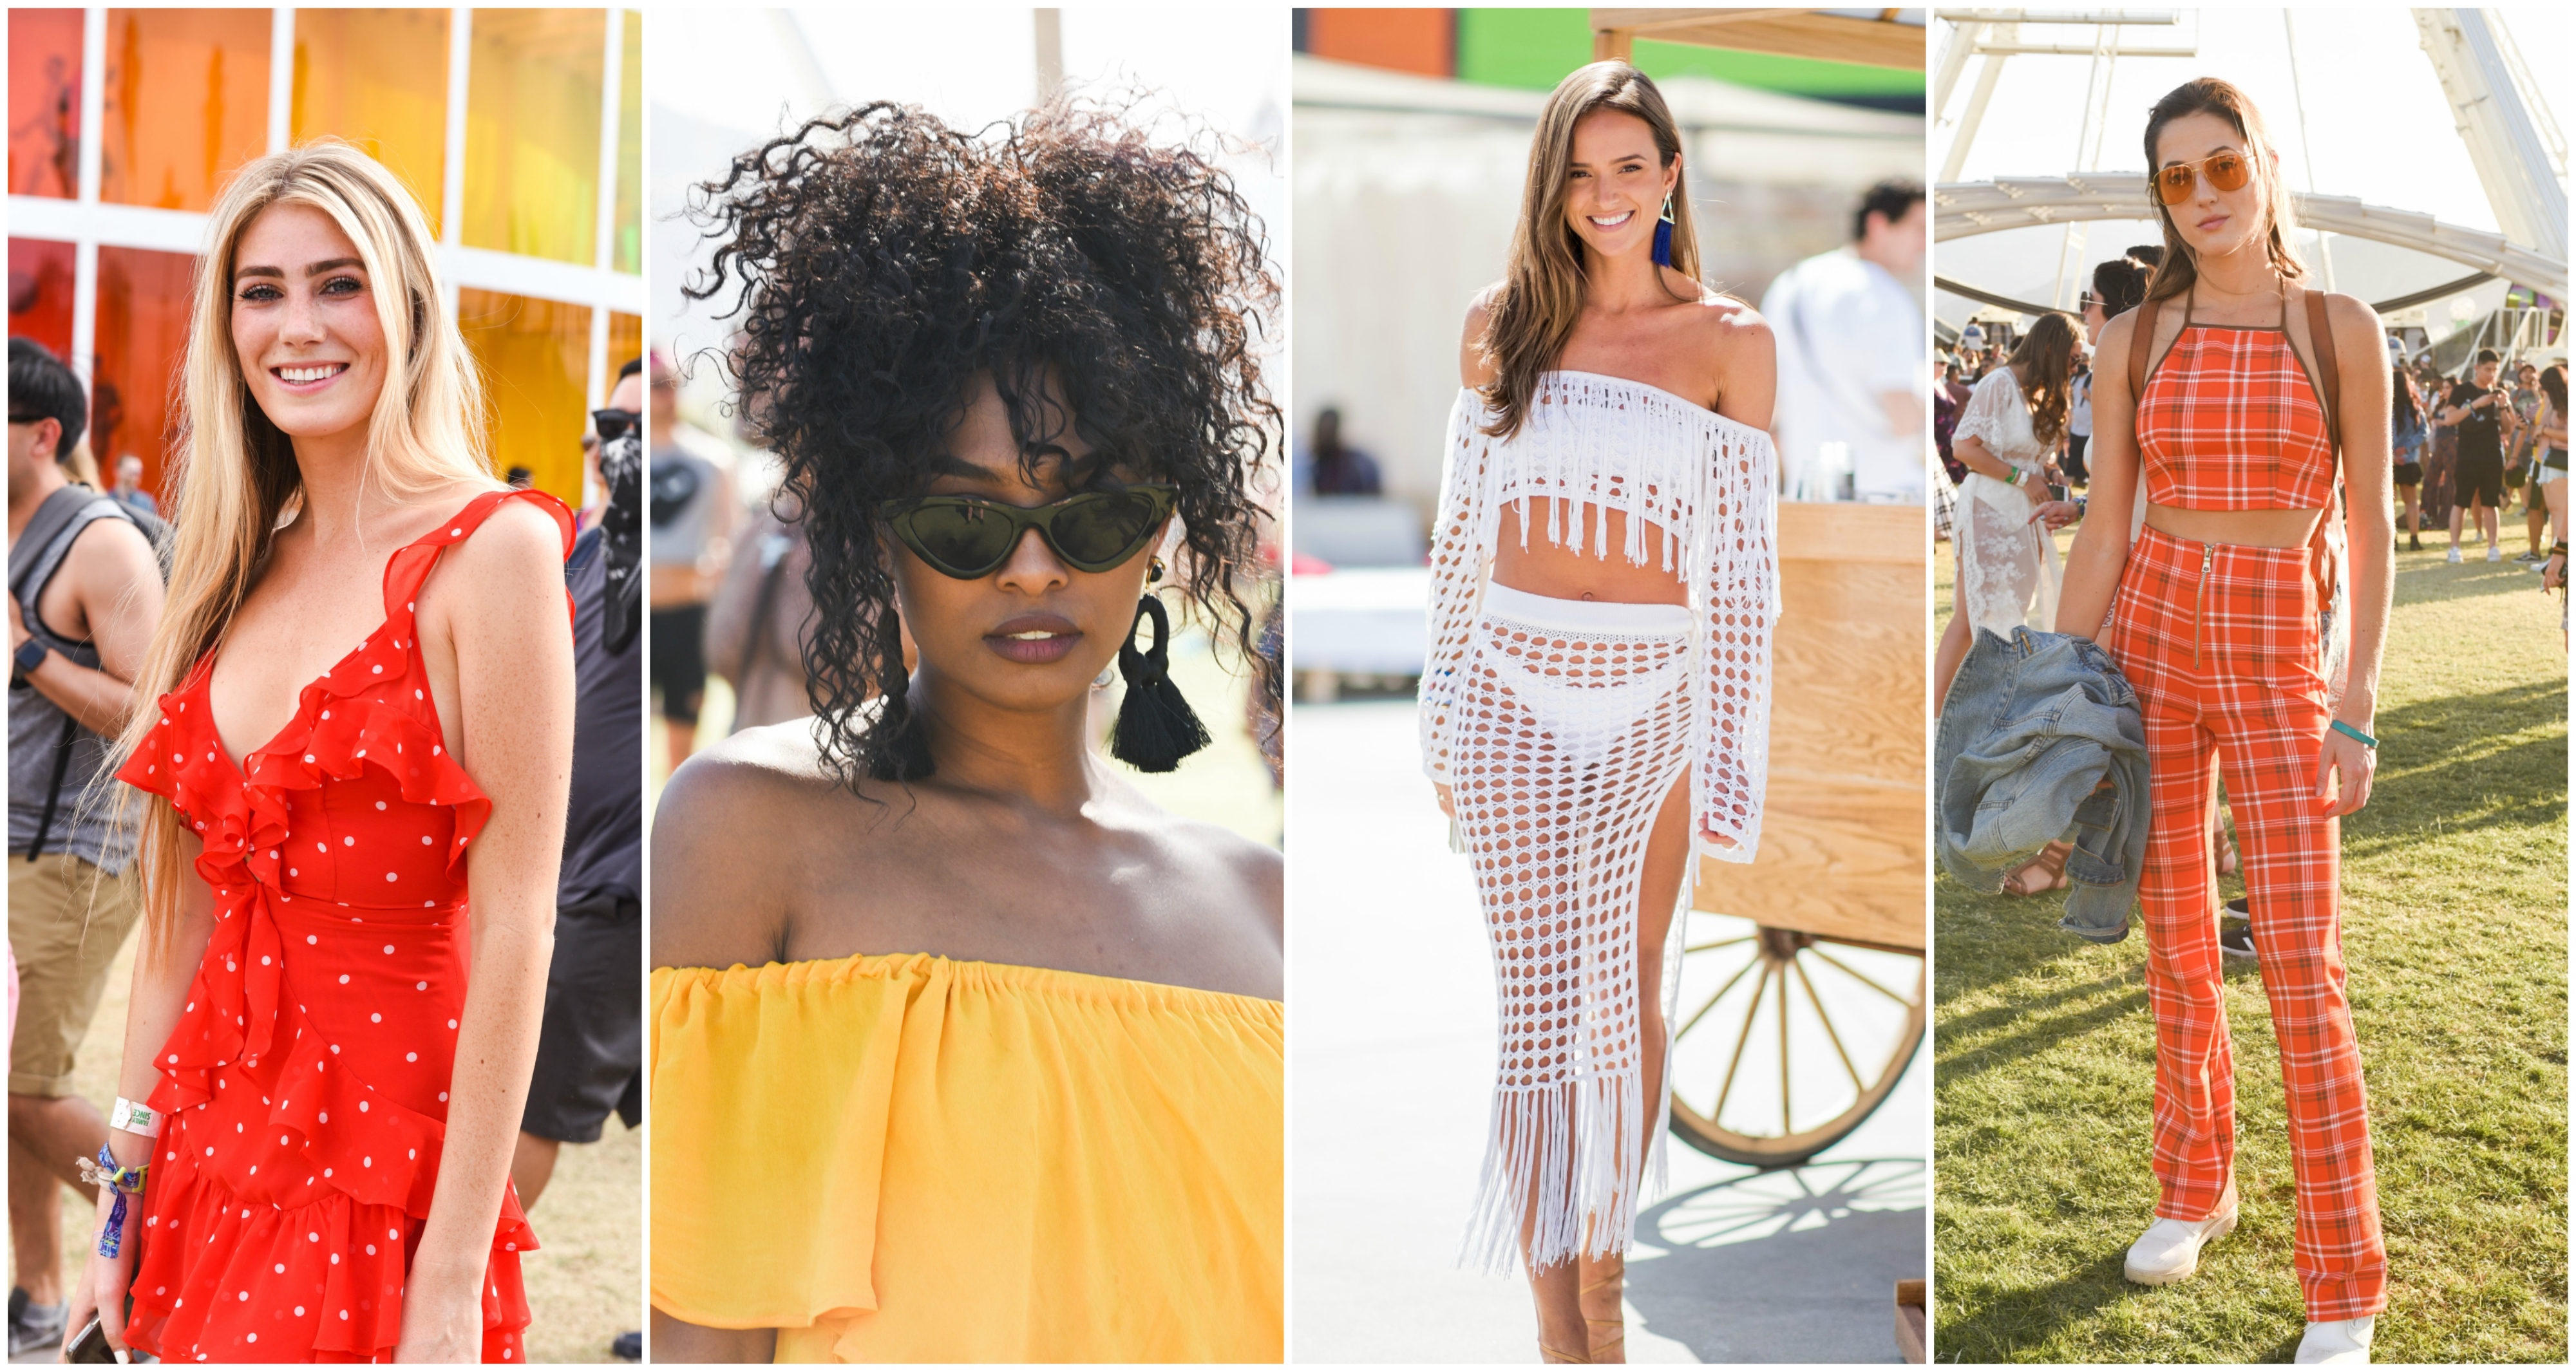 26 Refreshingly 39 Un Coachella 39 Outfits Spotted At Coachella 2018